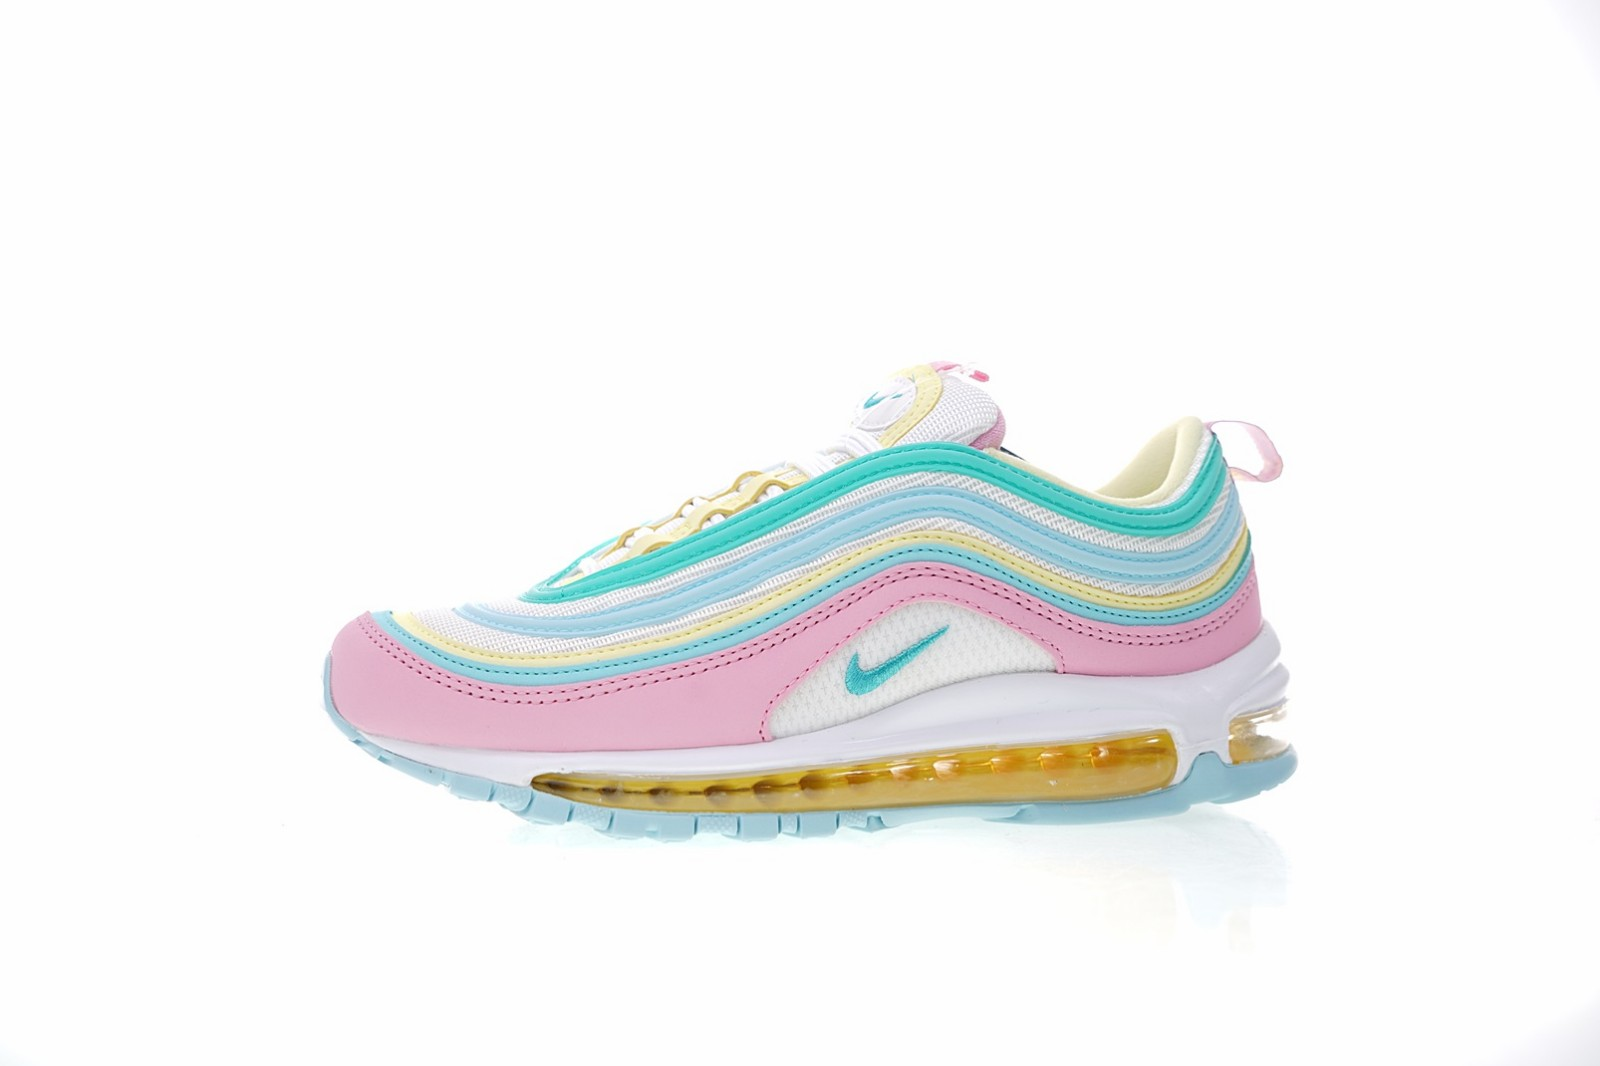 new style 4fffc 1af54 Nike Air Max 97 Pink White Yellow Green Candy Colorful Rainbow Shoes ...